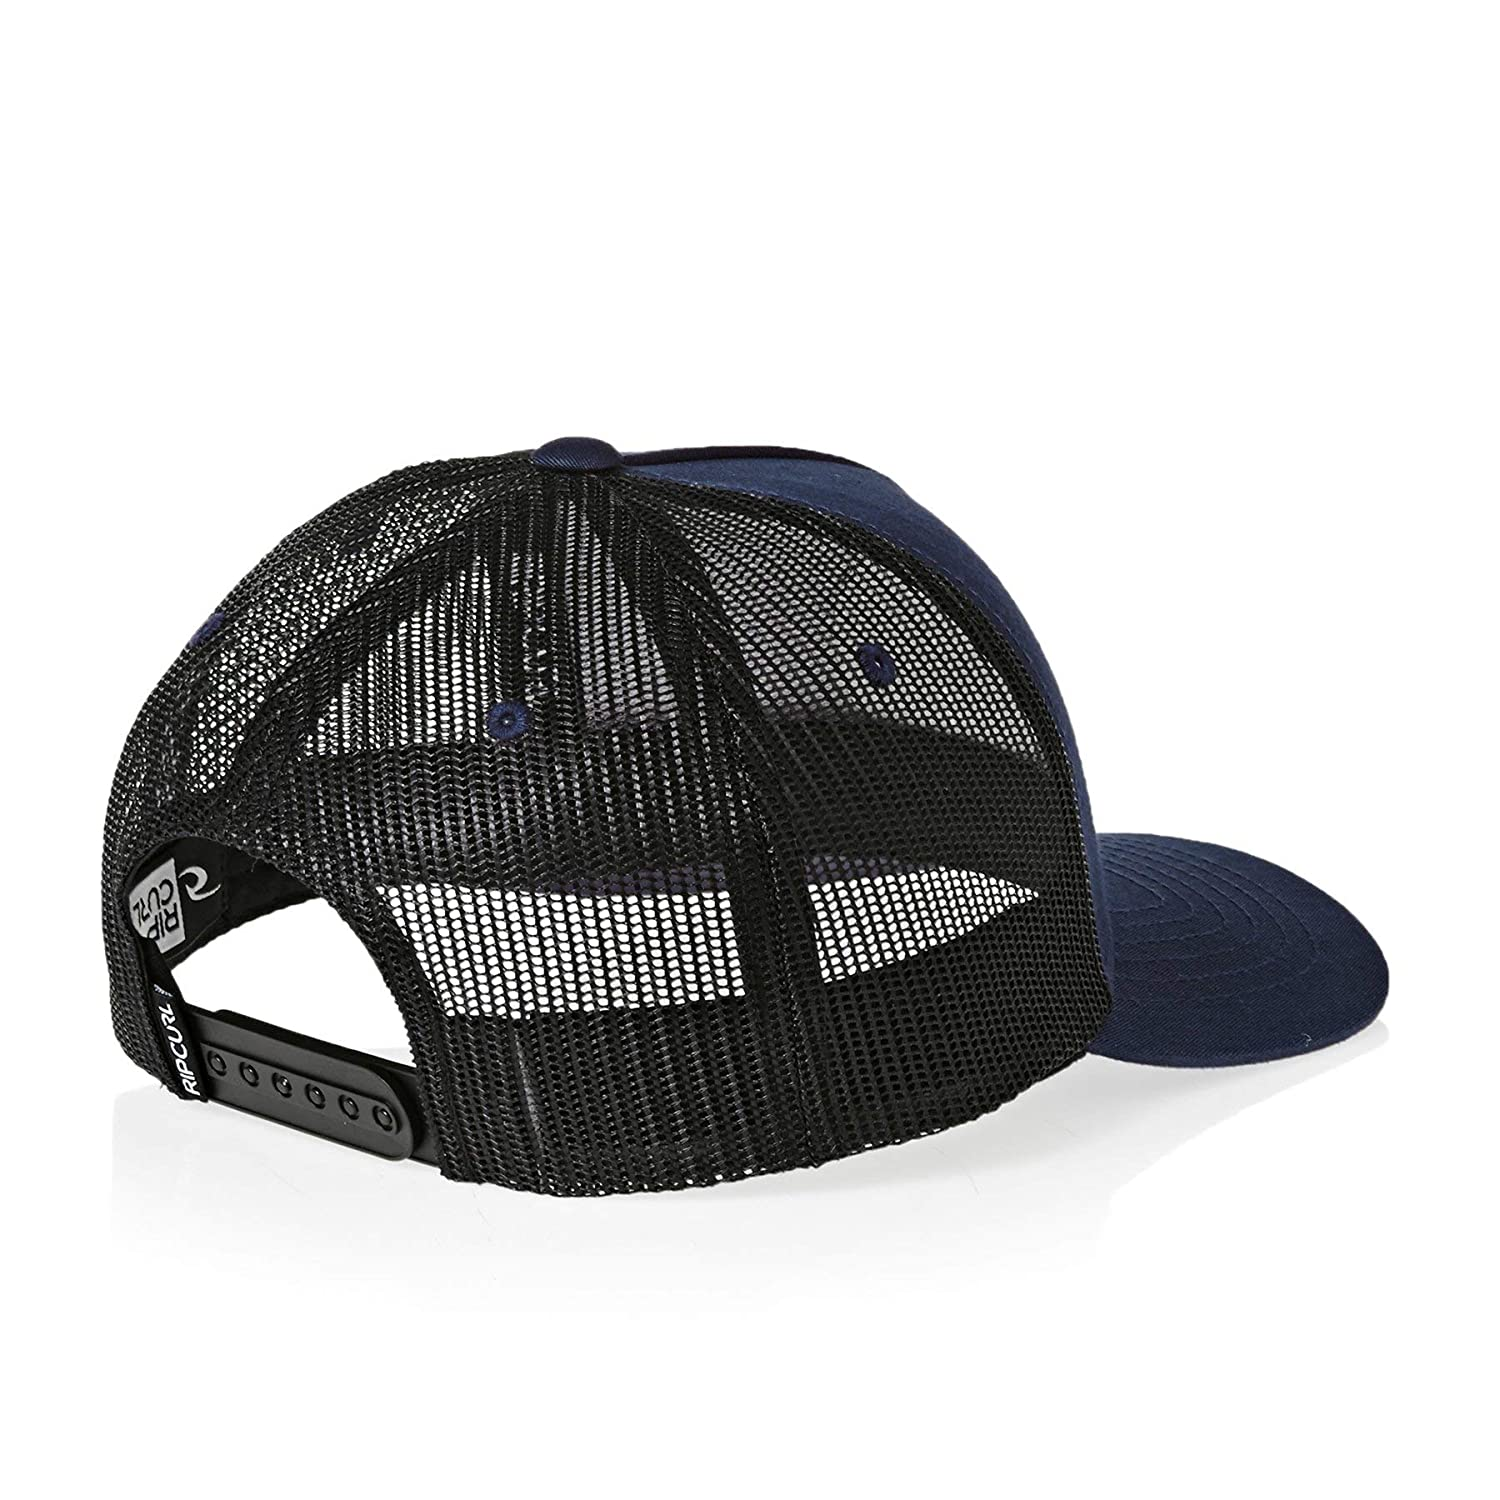 Rip Curl Gorras Kids Wetty Boy Night Sky Trucker: Amazon.es: Ropa y accesorios